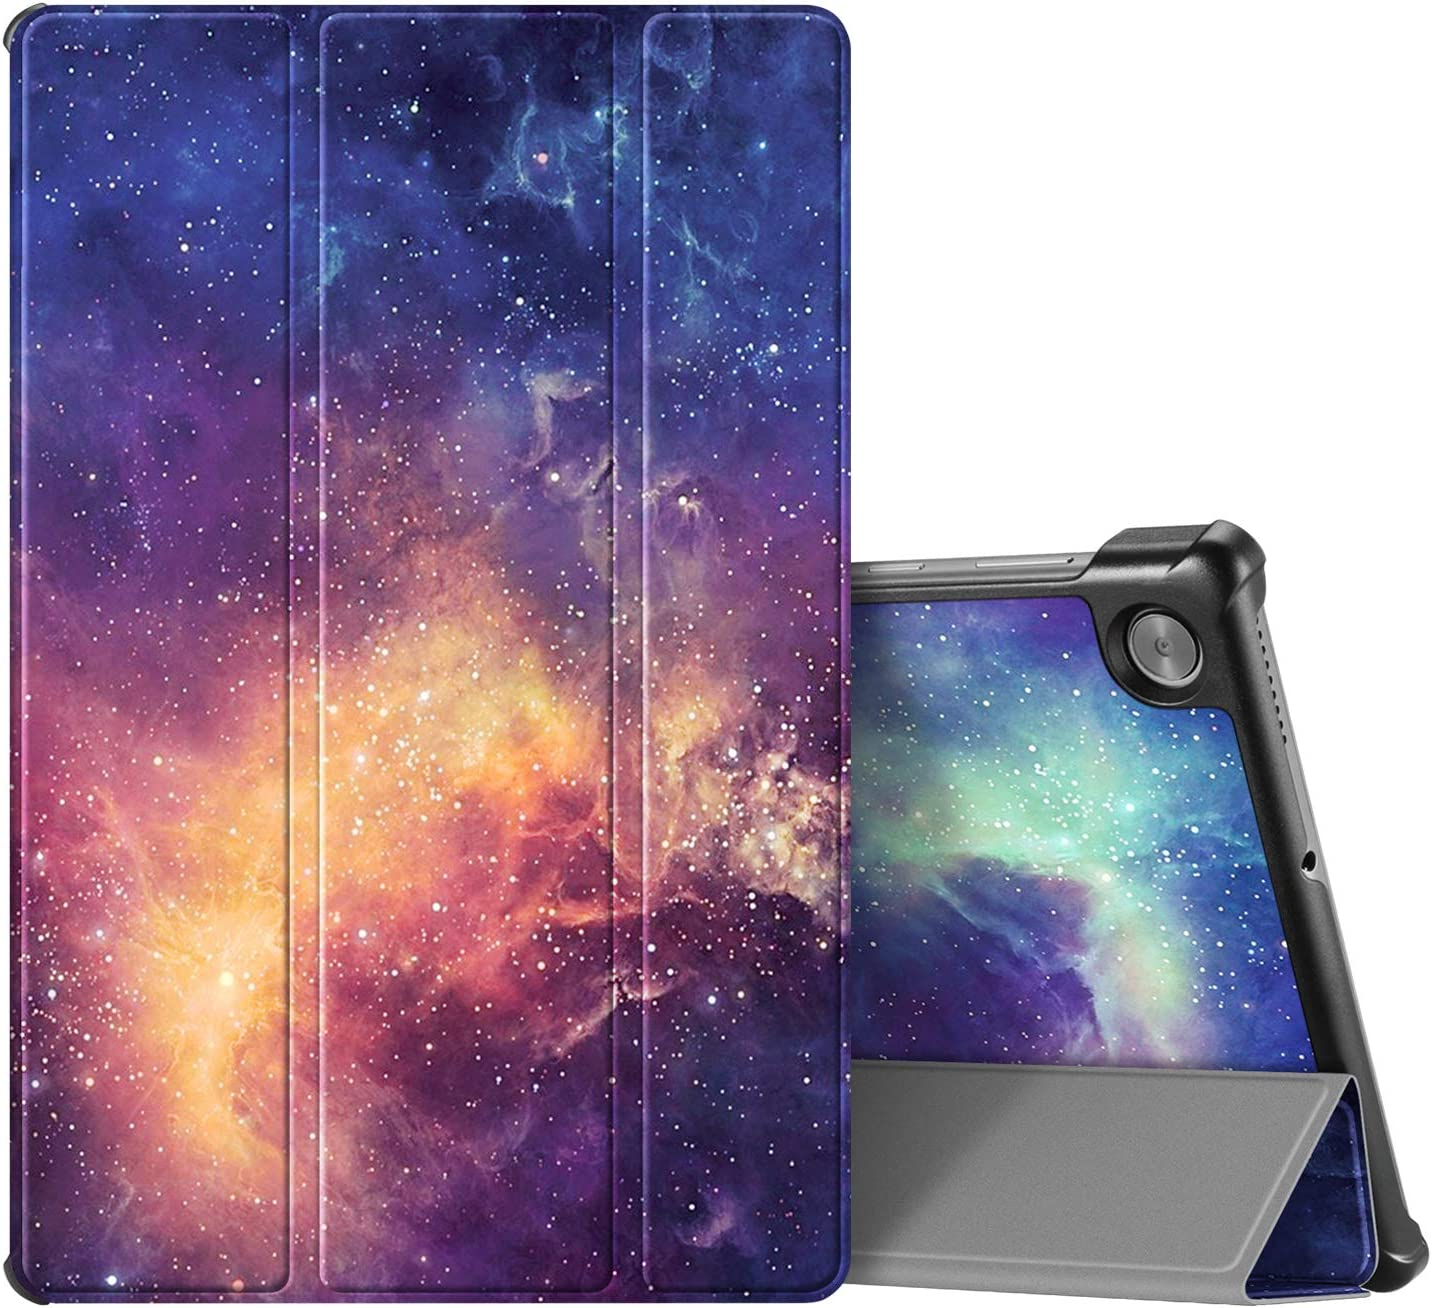 CaseBot Case for Lenovo Tab M10 Plus, Lightweight Slim Shell Stand Cover with Auto Sleep/Wake for Lenovo Tab M10 Plus TB-X606F / TB-X606X 10.3